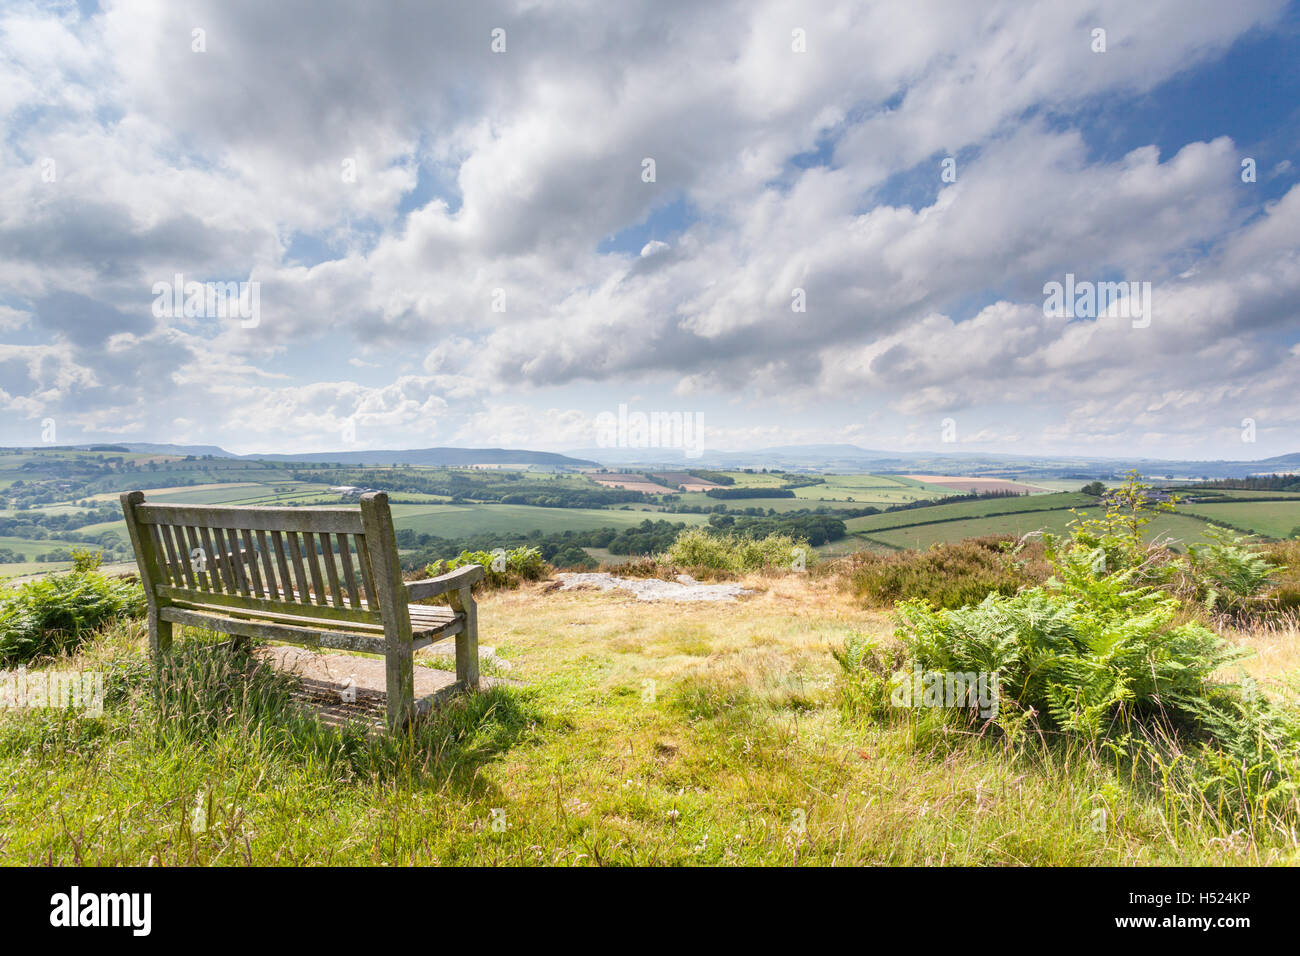 Wooden bench overlooking a wonderful view over the valley to the distant hills on a bright and cheery sunny day, Stock Photo